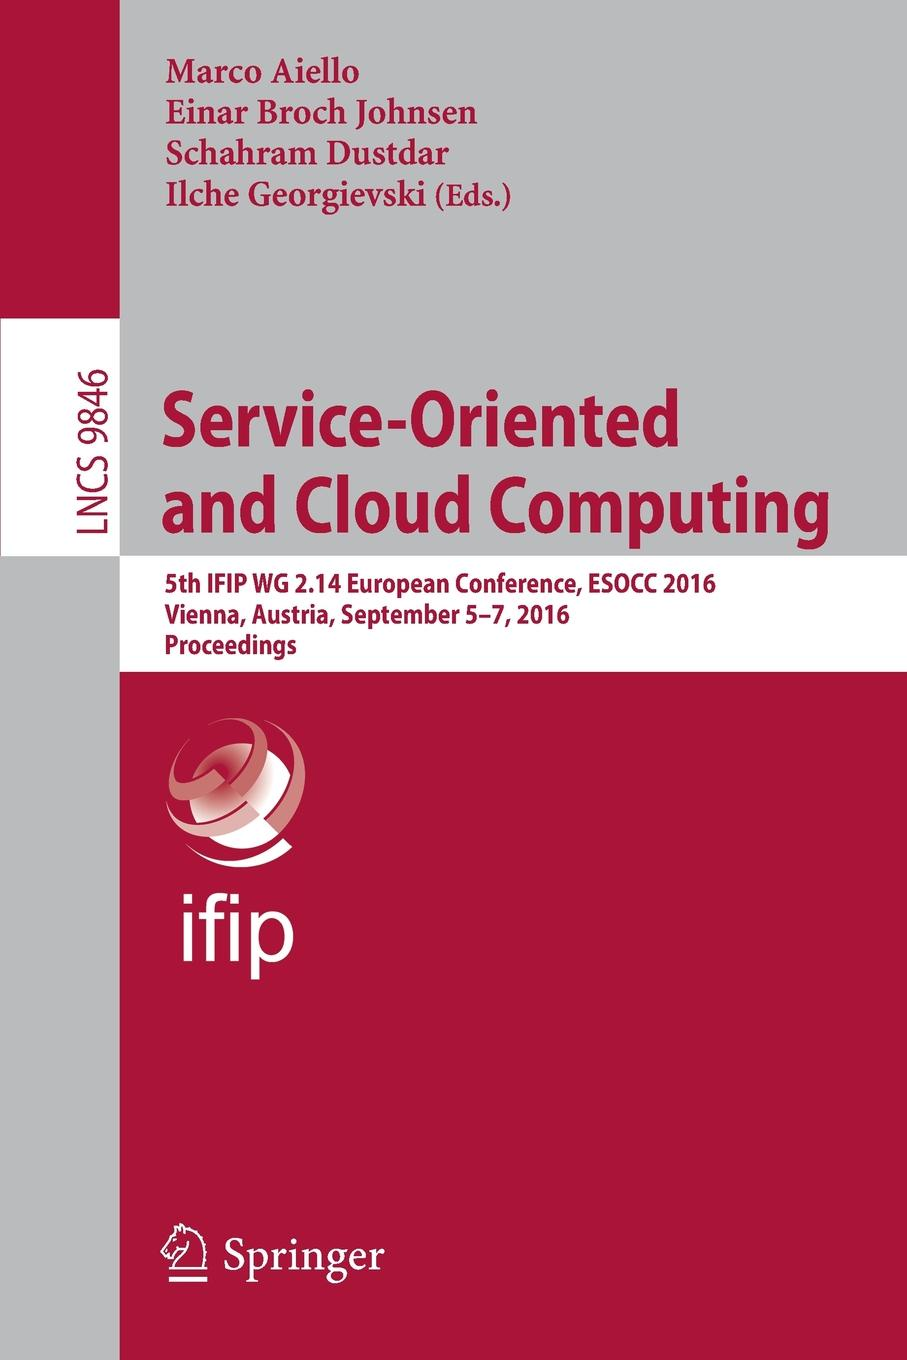 Service-Oriented and Cloud Computing. 5th IFIP WG 2.14 European Conference, ESOCC 2016, Vienna, Austria, September 5-7, 2016, Proceedings bubendorfer kris market oriented grid and utility computing